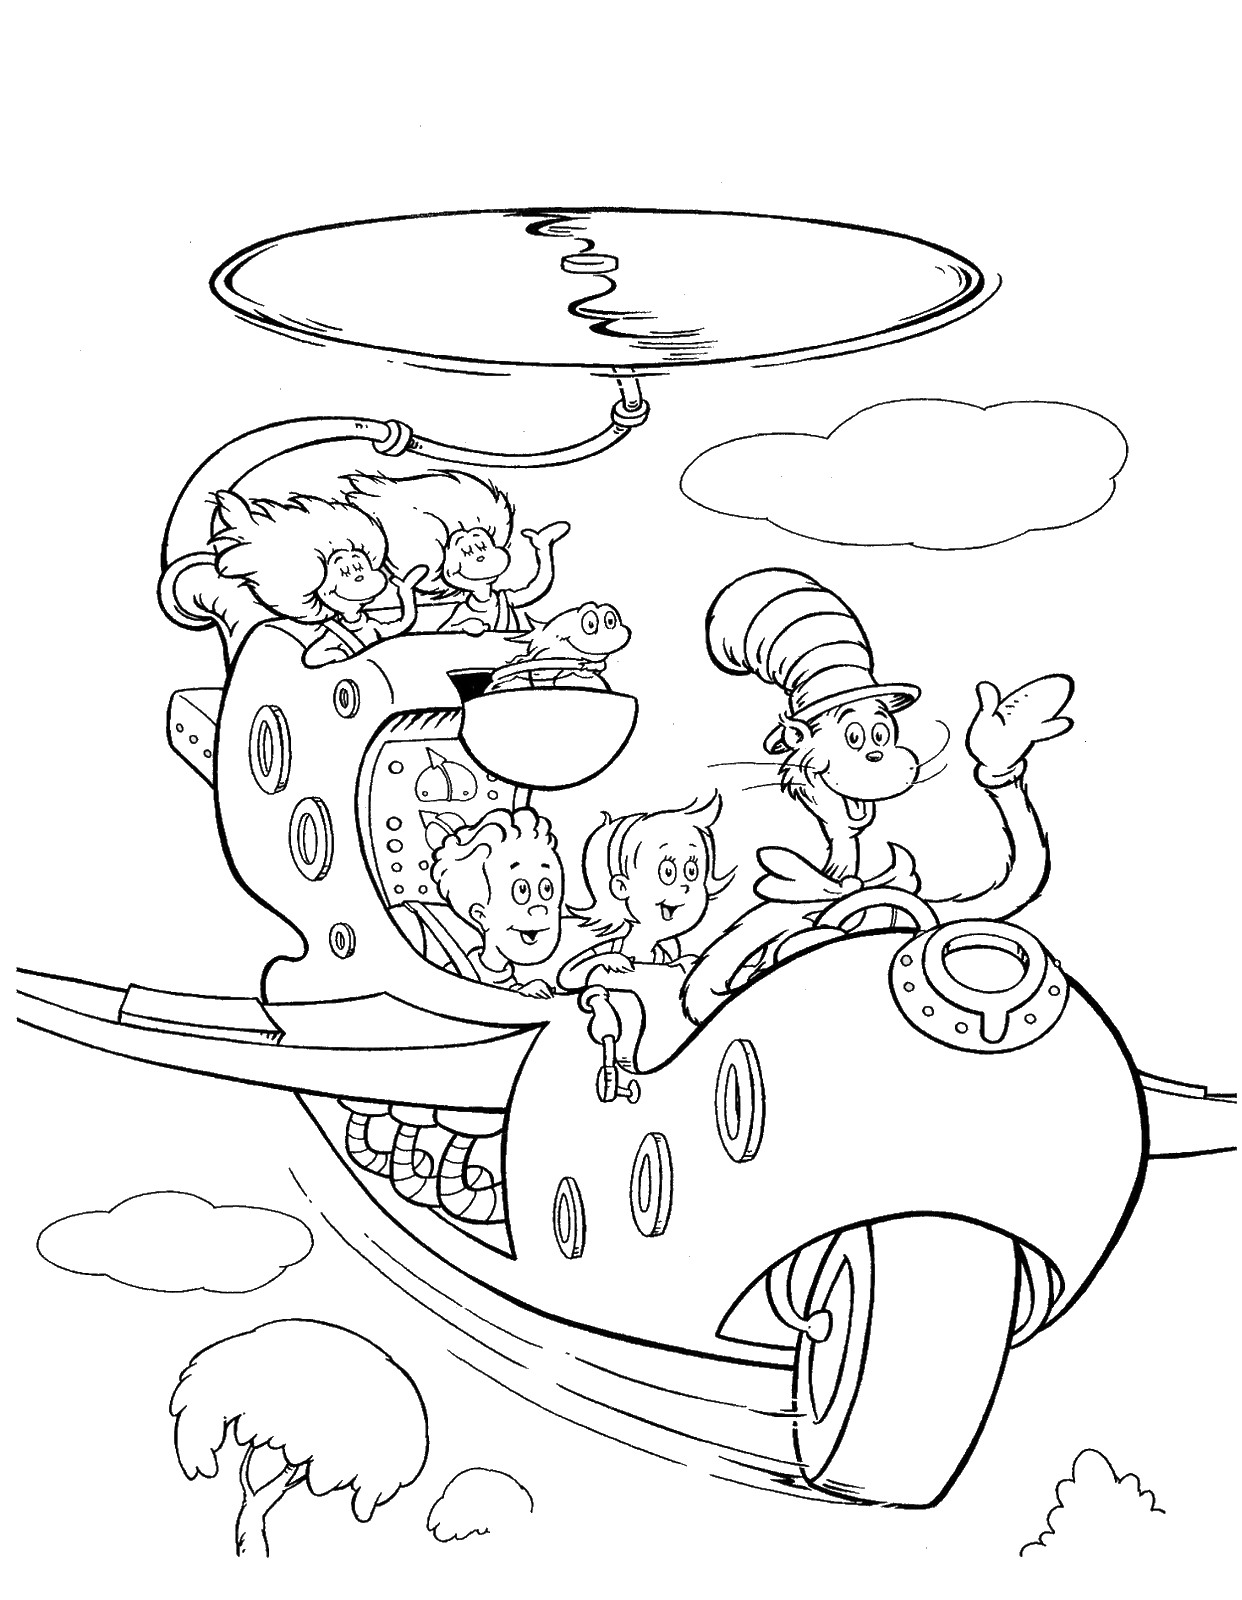 cat in the hat pictures to color free printable cat in the hat coloring pages for kids to cat hat the pictures in color